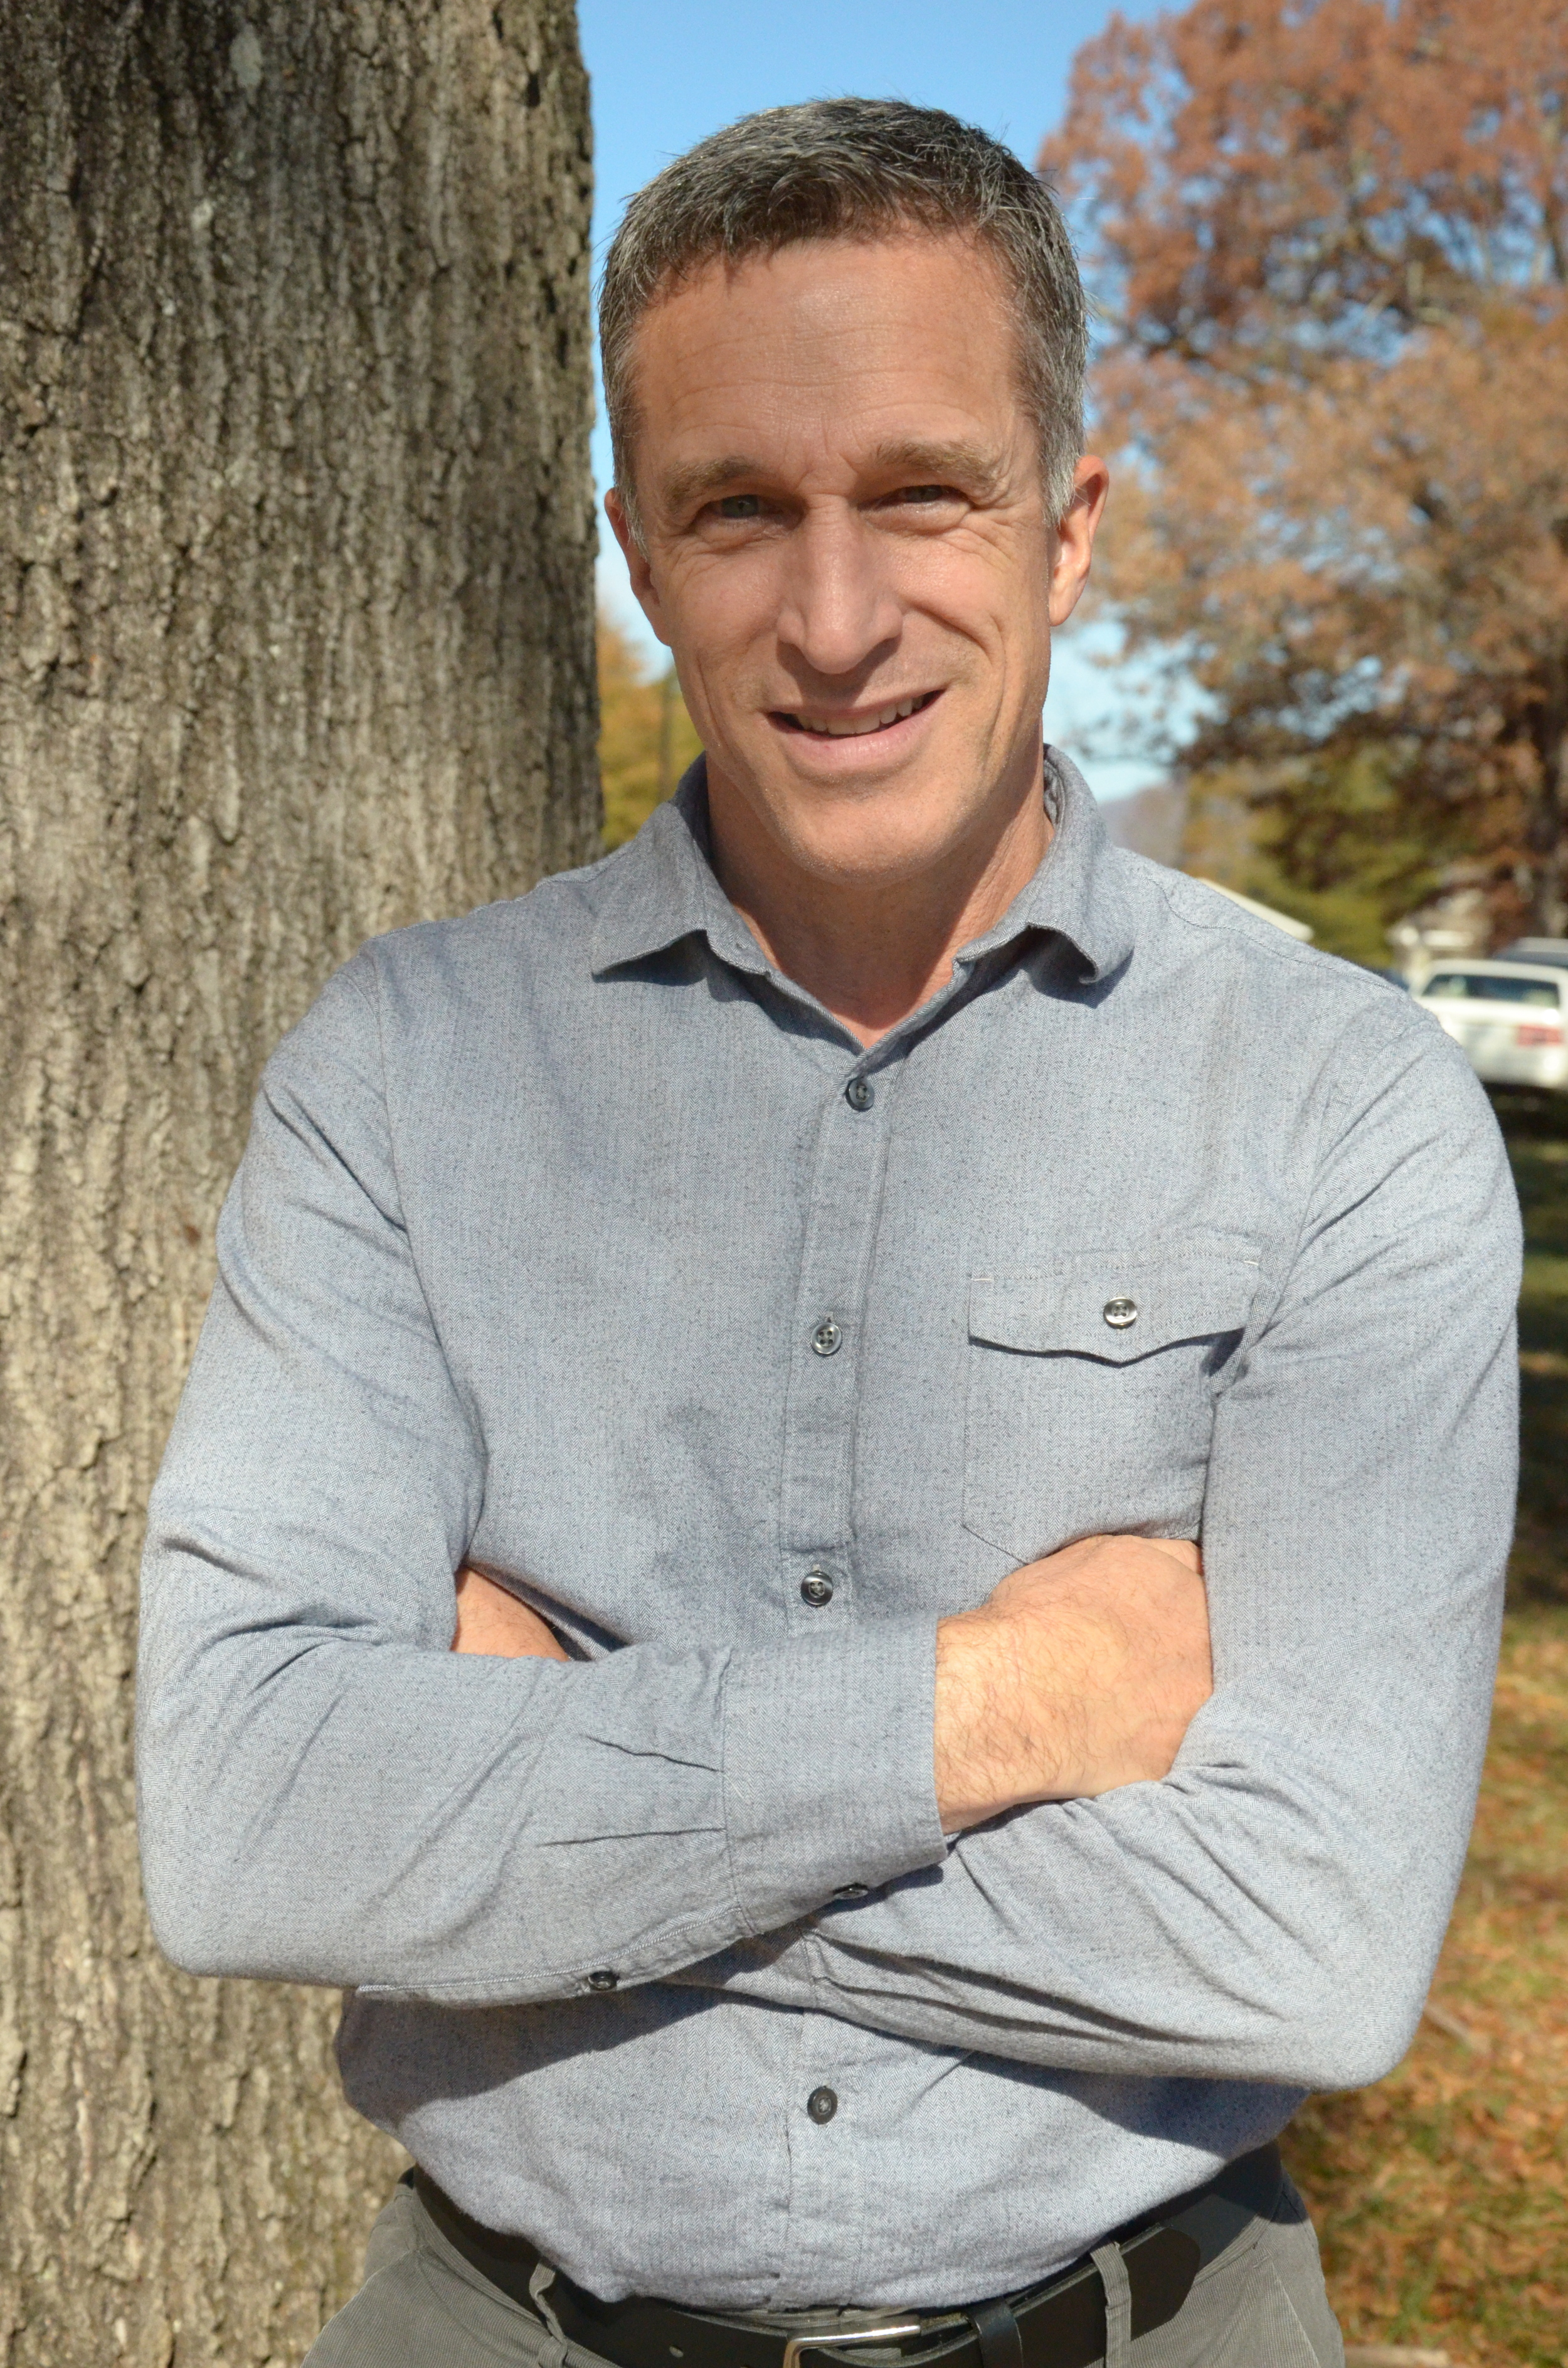 Steven Bielby, psychology instructor and personal counselor